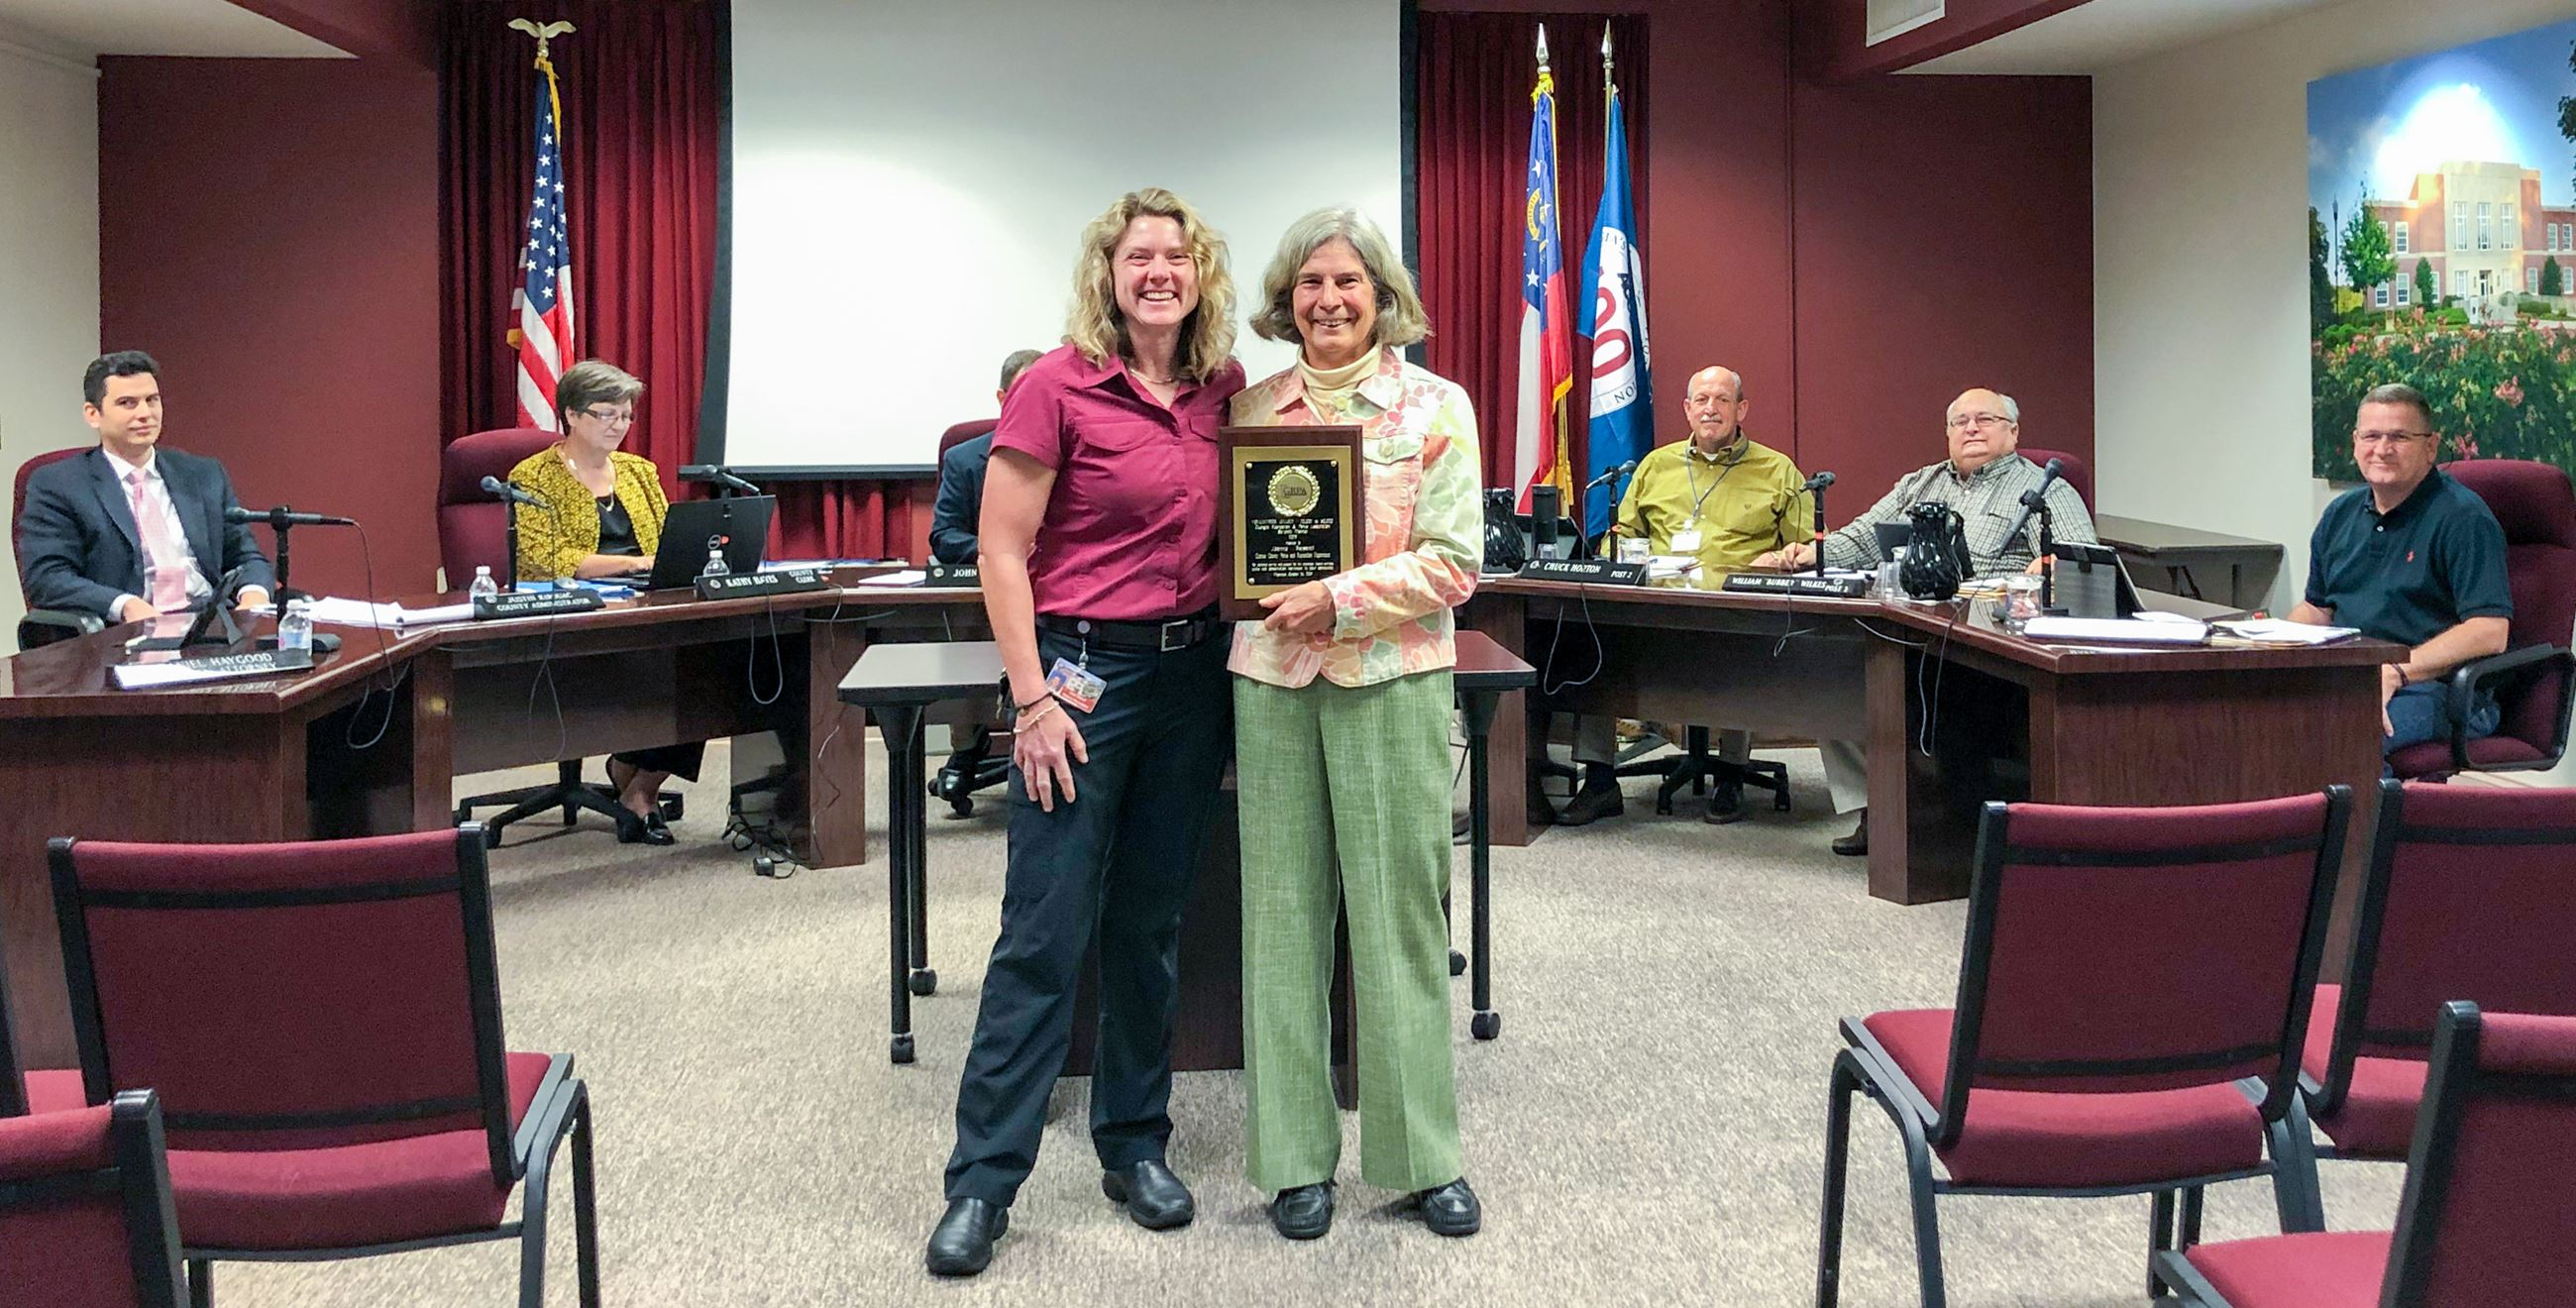 OCPRD Parks Volunteer of the Year Receives Award from Parks & Recreation Director